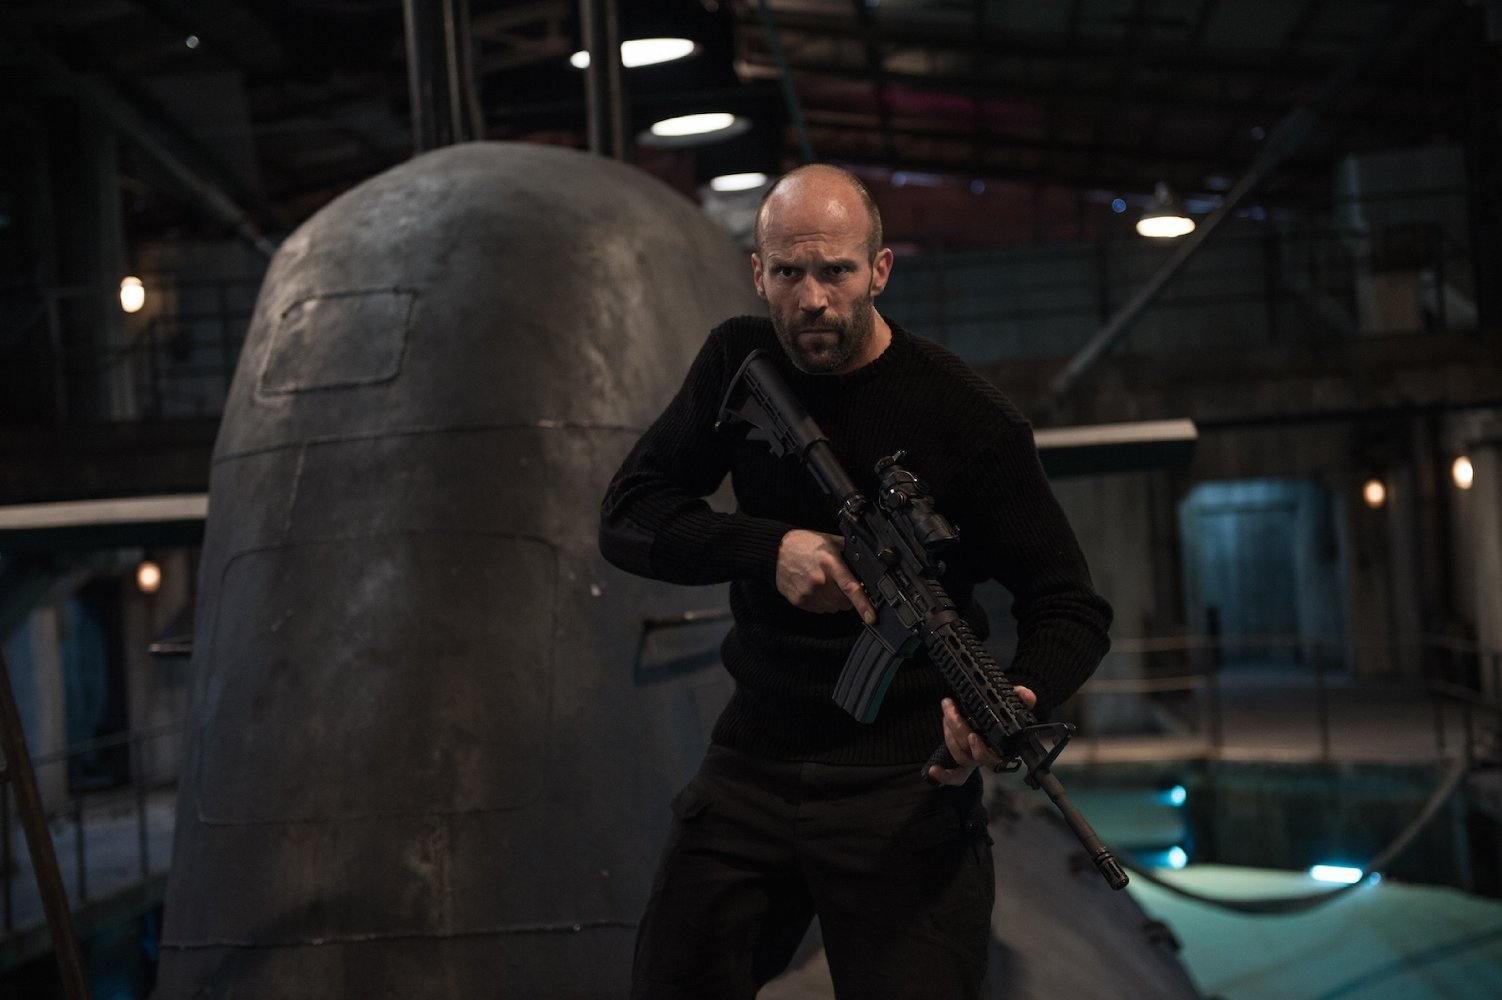 Resultado de imagen para Mechanic: Resurrection + weapons